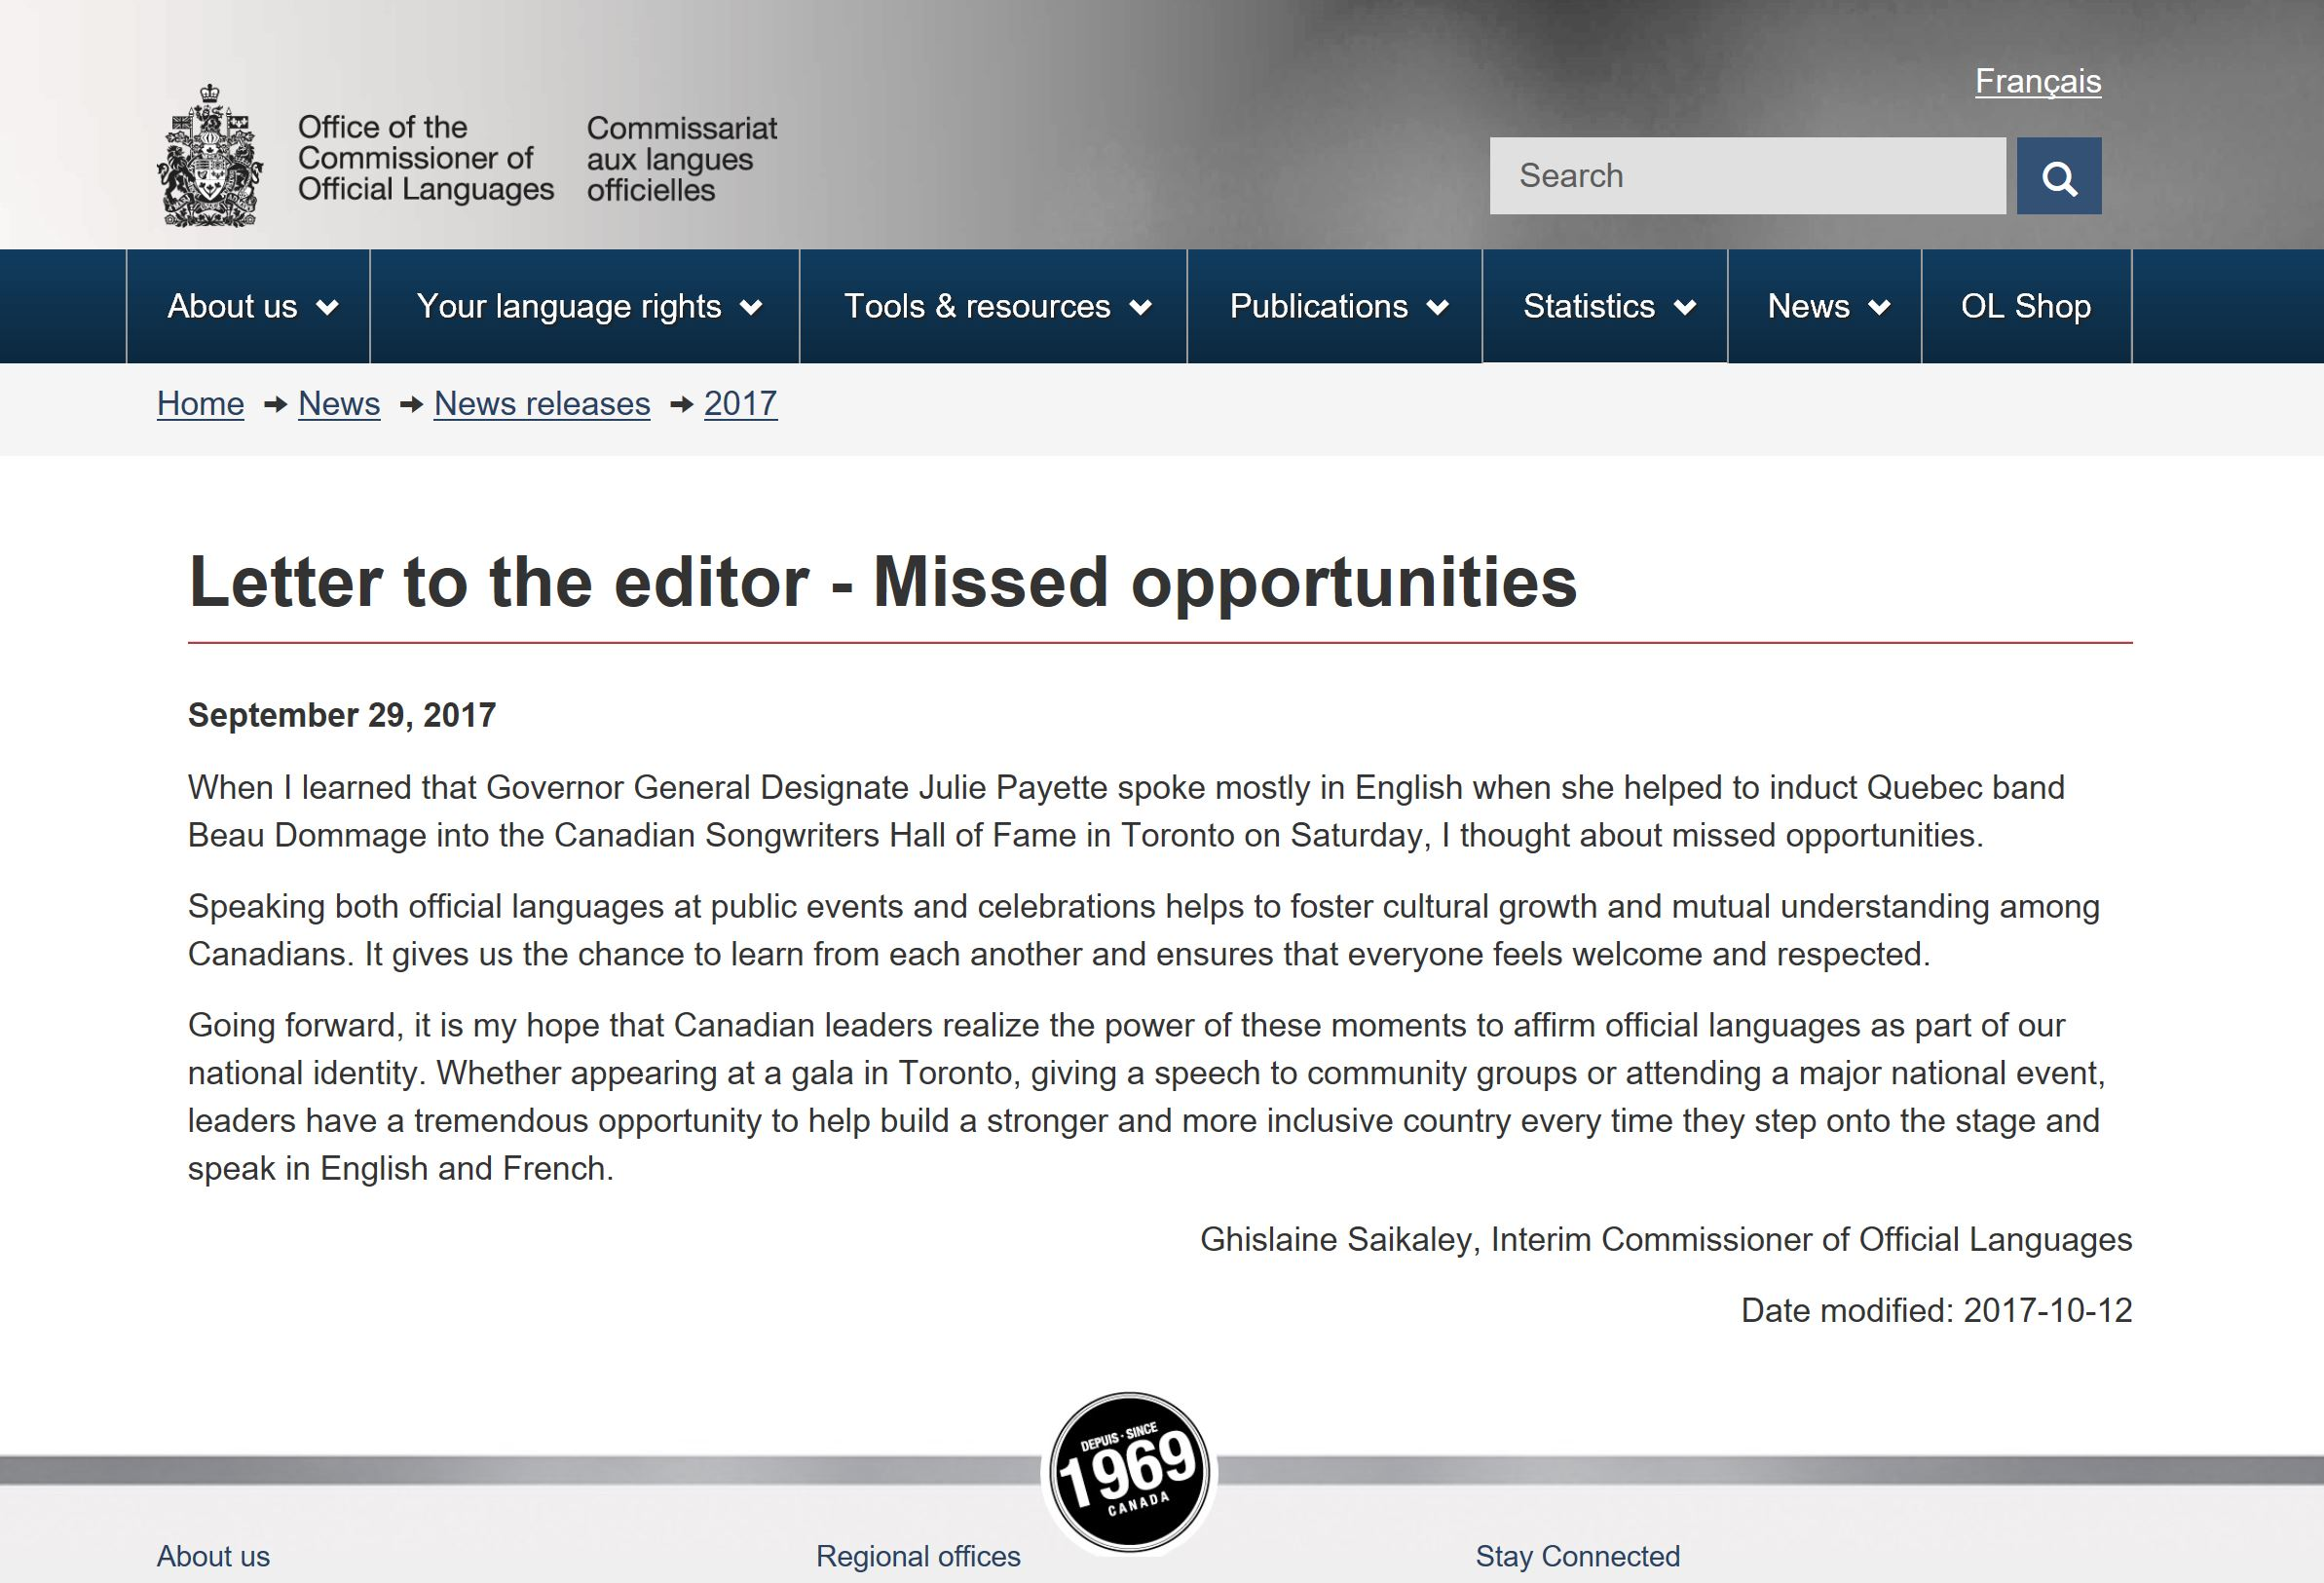 Letter to the editor - Missed opportunities - Click to enlarge